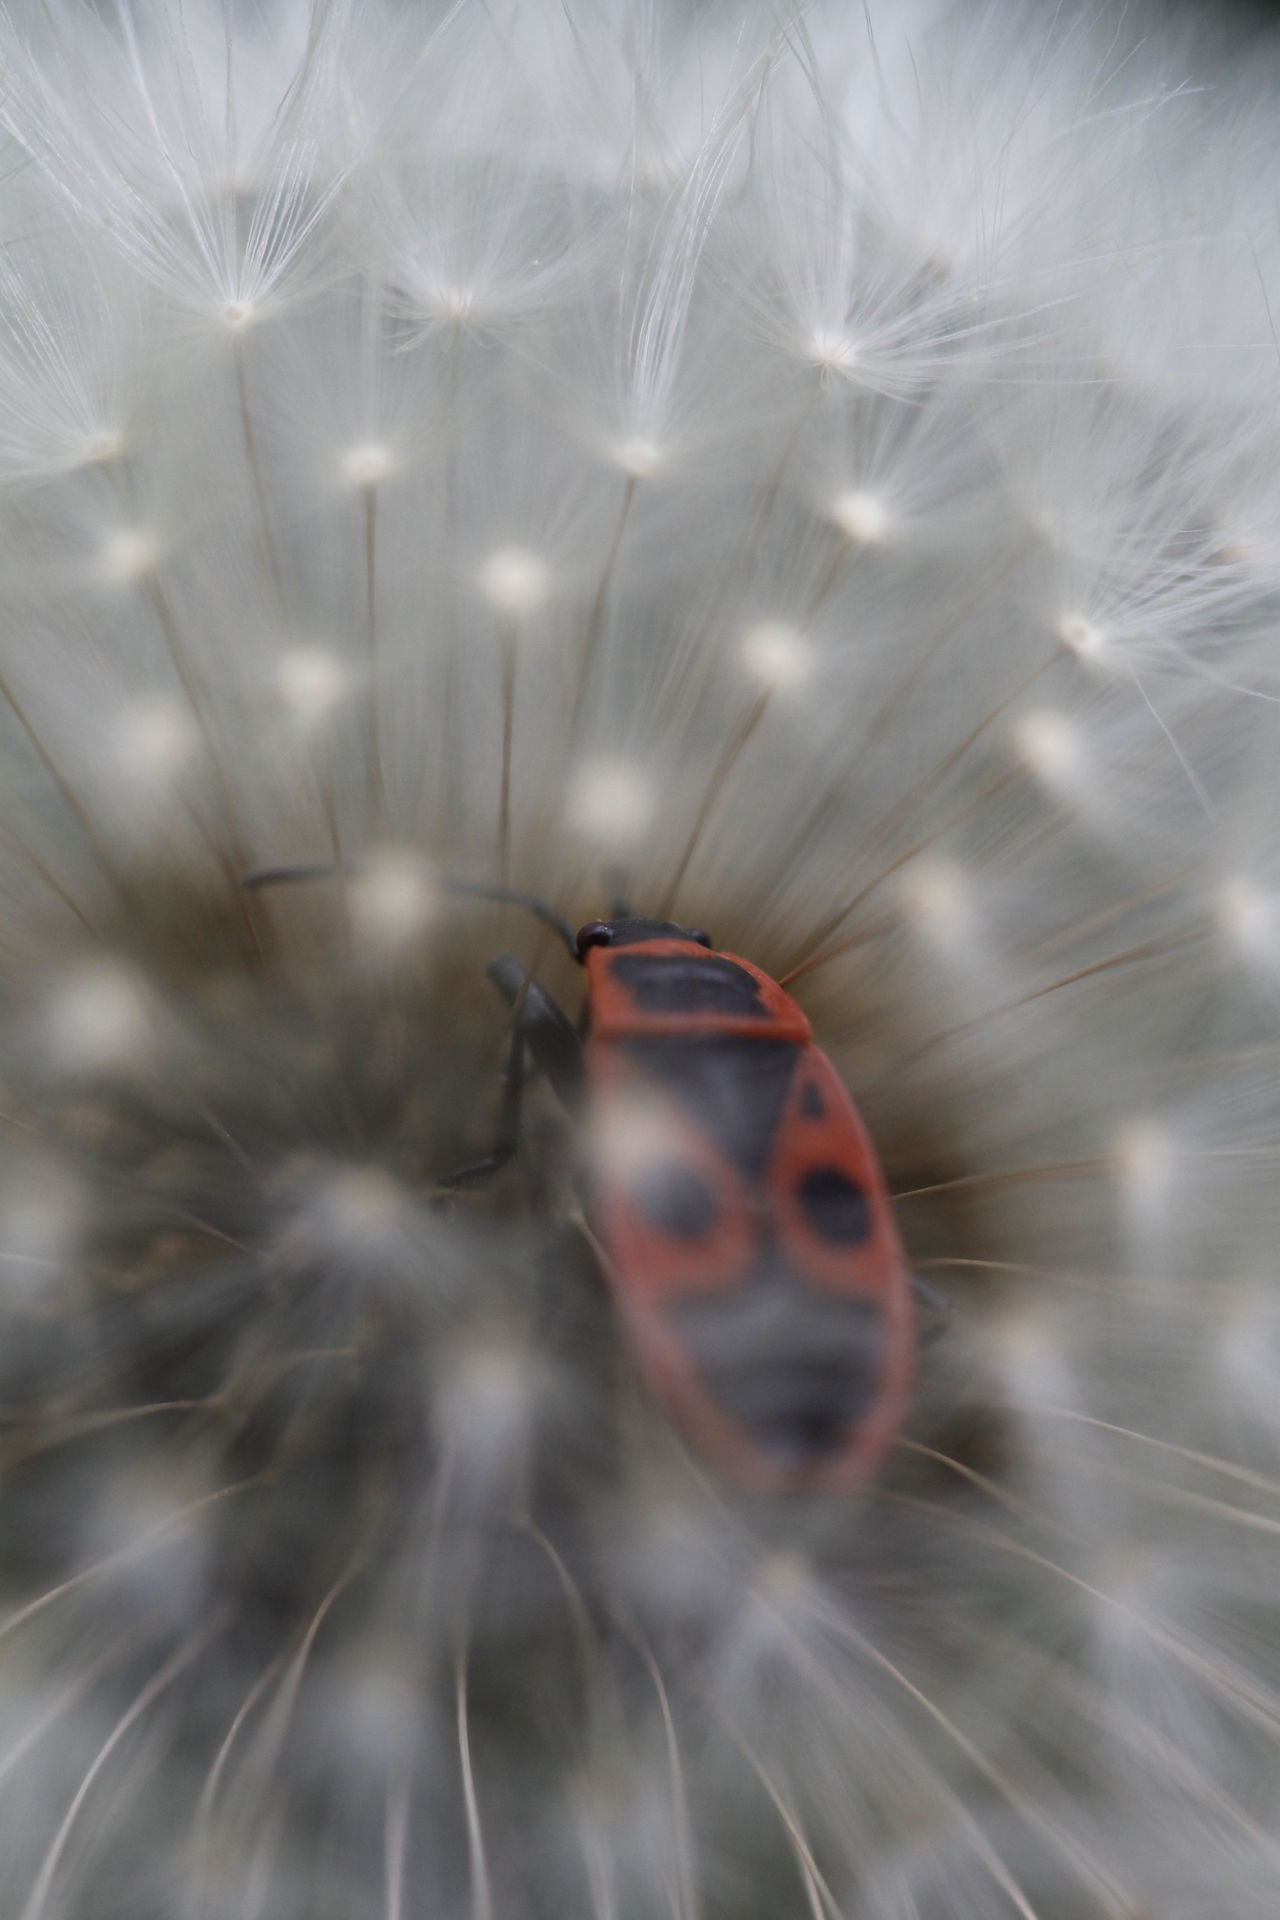 Animal Themes Animals In The Wild Beauty In Nature Bianco Blur Close-up Contrast Contrasts Dandelion Seed Insect Insetto Macro Macro Beauty Macro Photography Macro_collection Nature No People One Animal Outdoors Red Rosso Sfocatura Tarassaco Tarassaco Comune White EyeEmNewHere